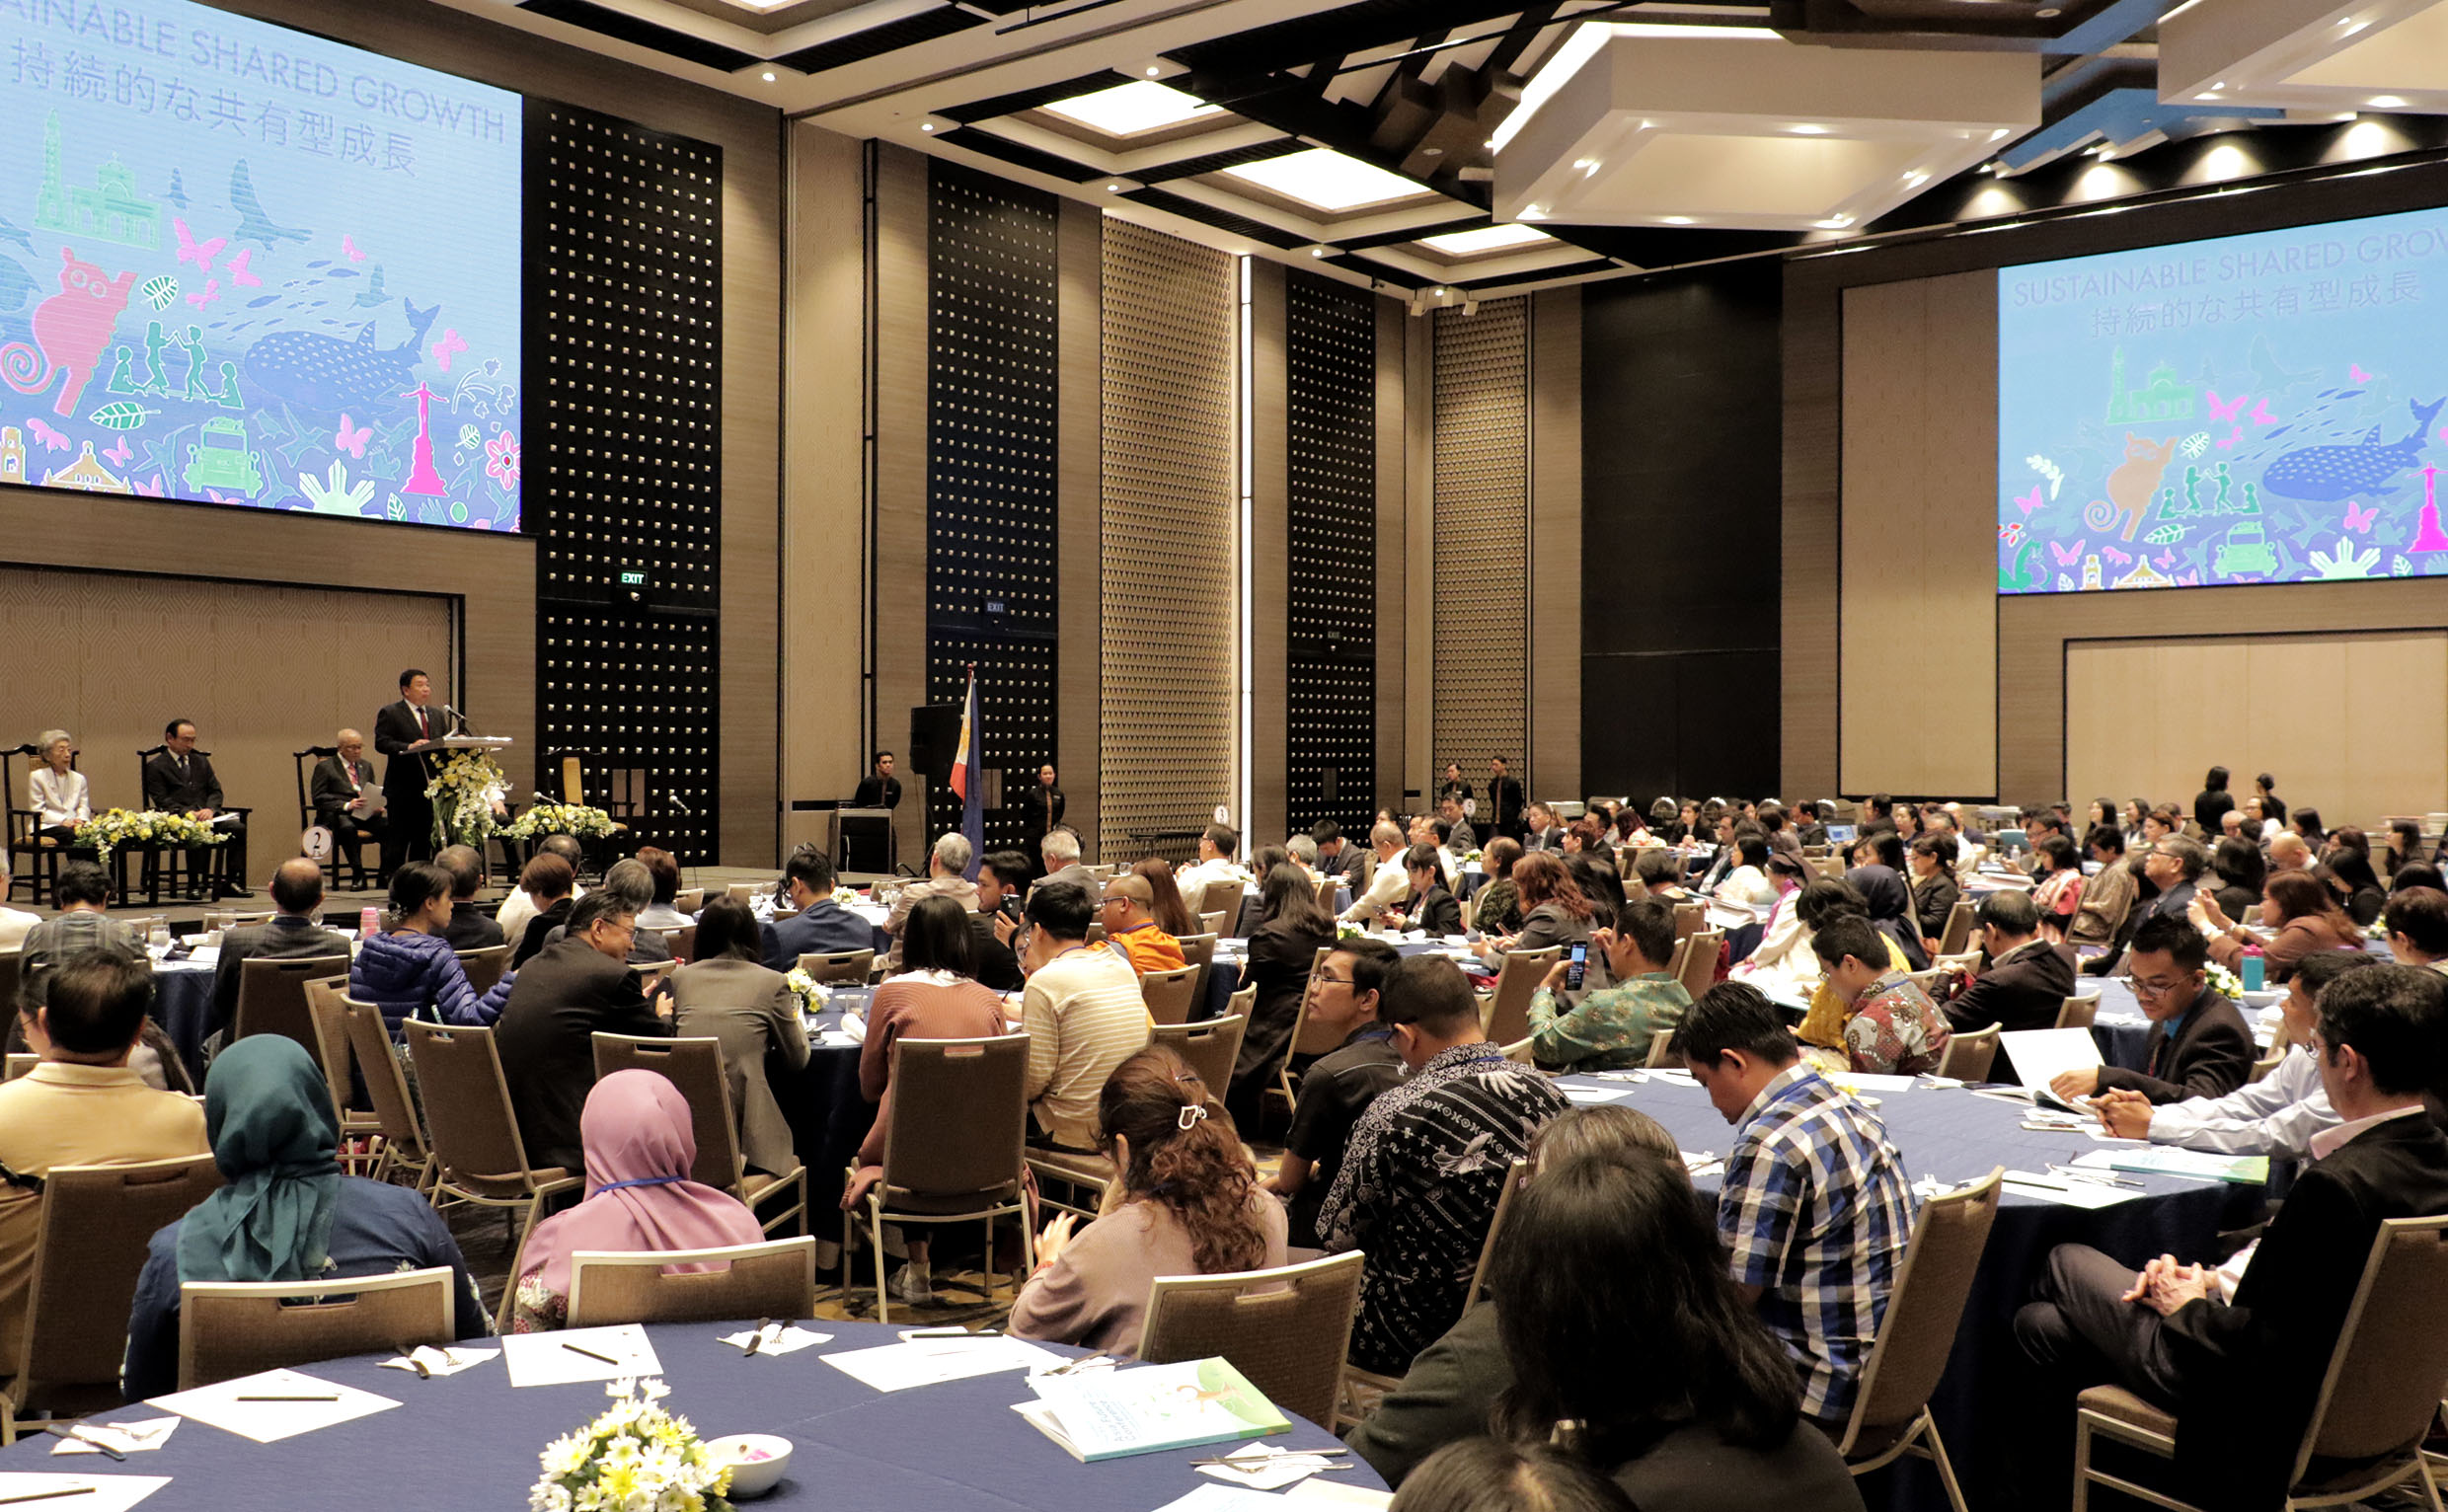 UPLB-hosted AFC 5 tackles sustainable shared growth for Asia